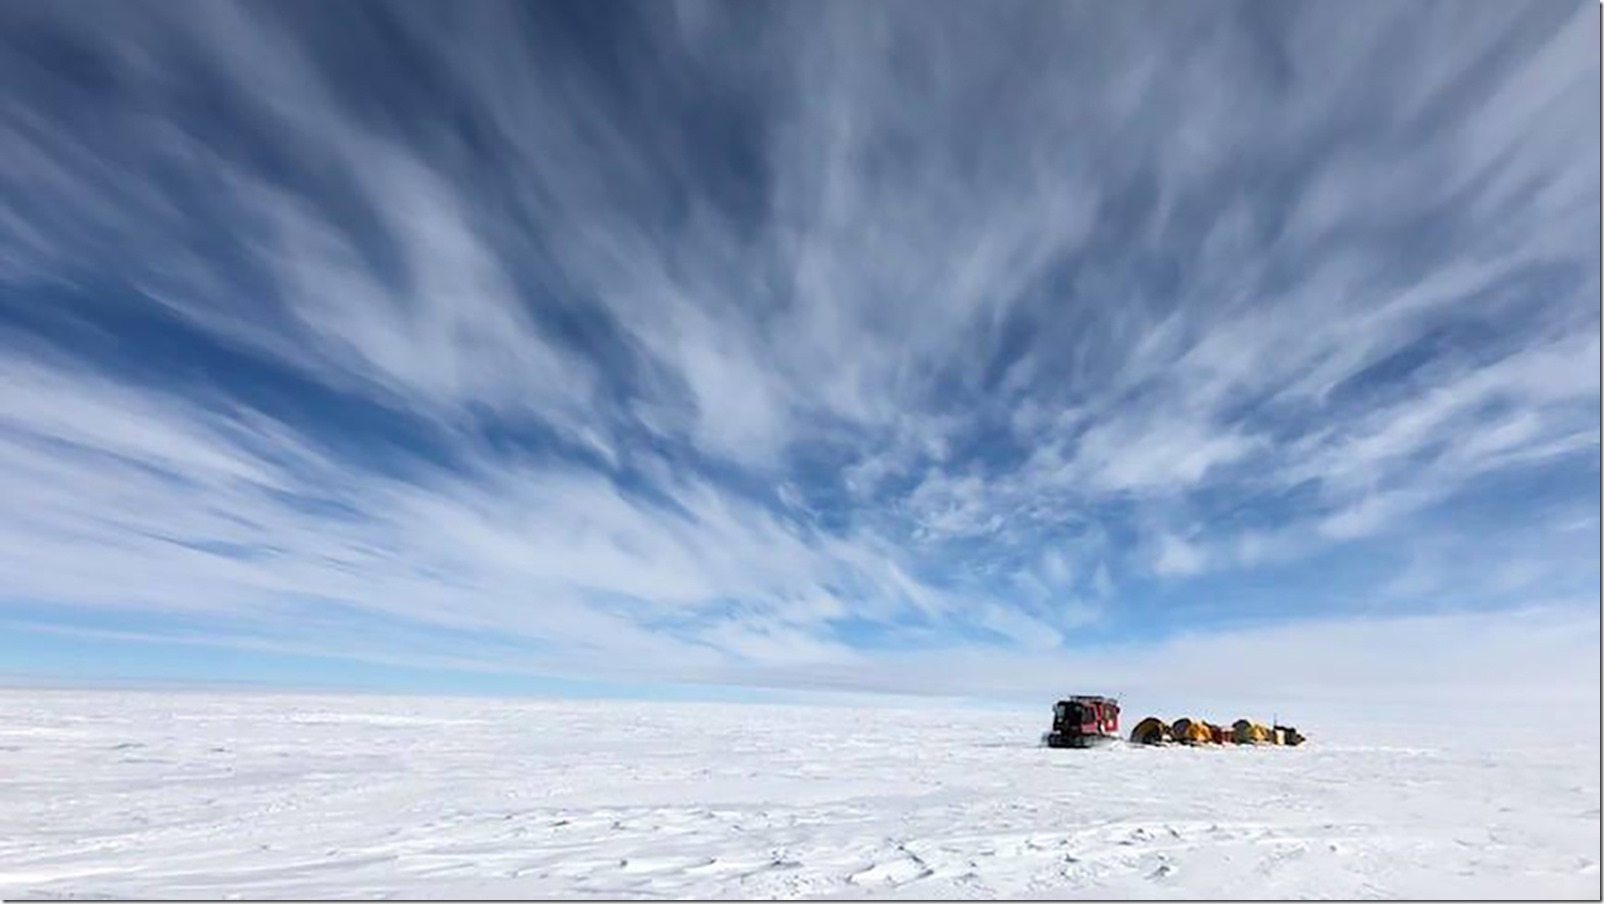 To assess the accuracy of the newly released ICESat-2 data, a NASA team set out to the South Pole. For the second-straight year, the team endured below-freezing temperatures, biting winds, and high altitude to conduct a traverse along the 88 degree south latitude line, taking highly accurate GPS measurements to compare with those from the satellite. Credit: NASA Goddard/Kelly Brunt